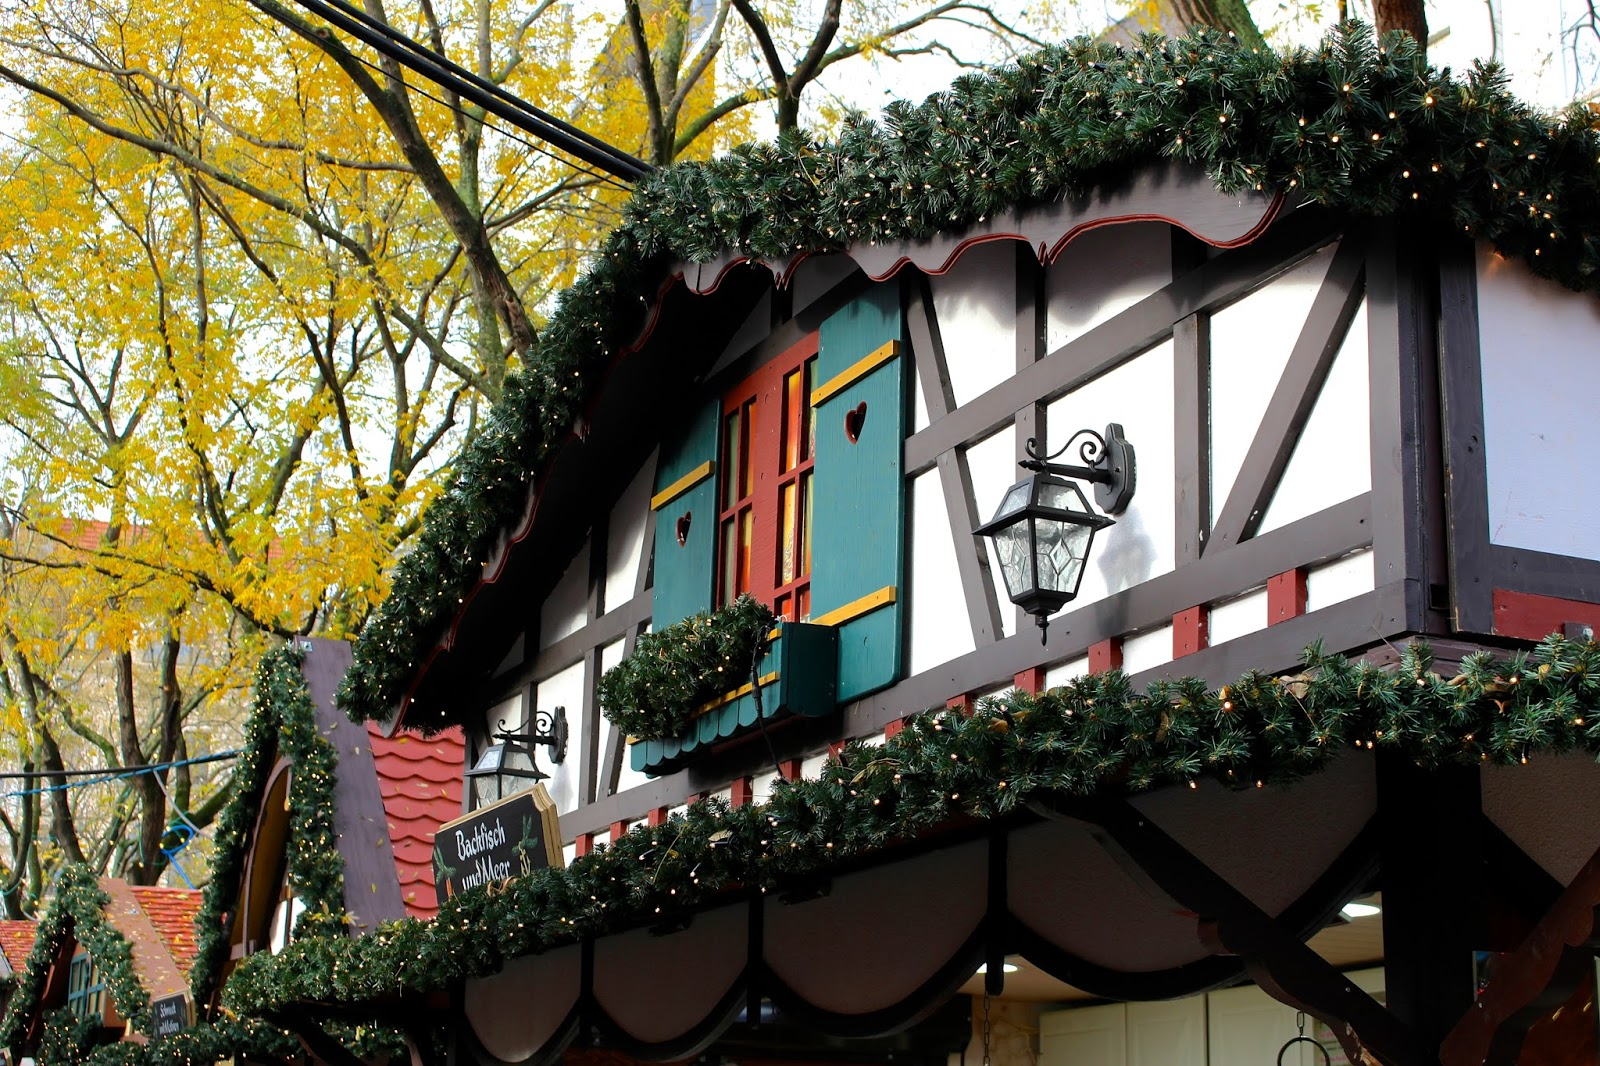 German market architecture